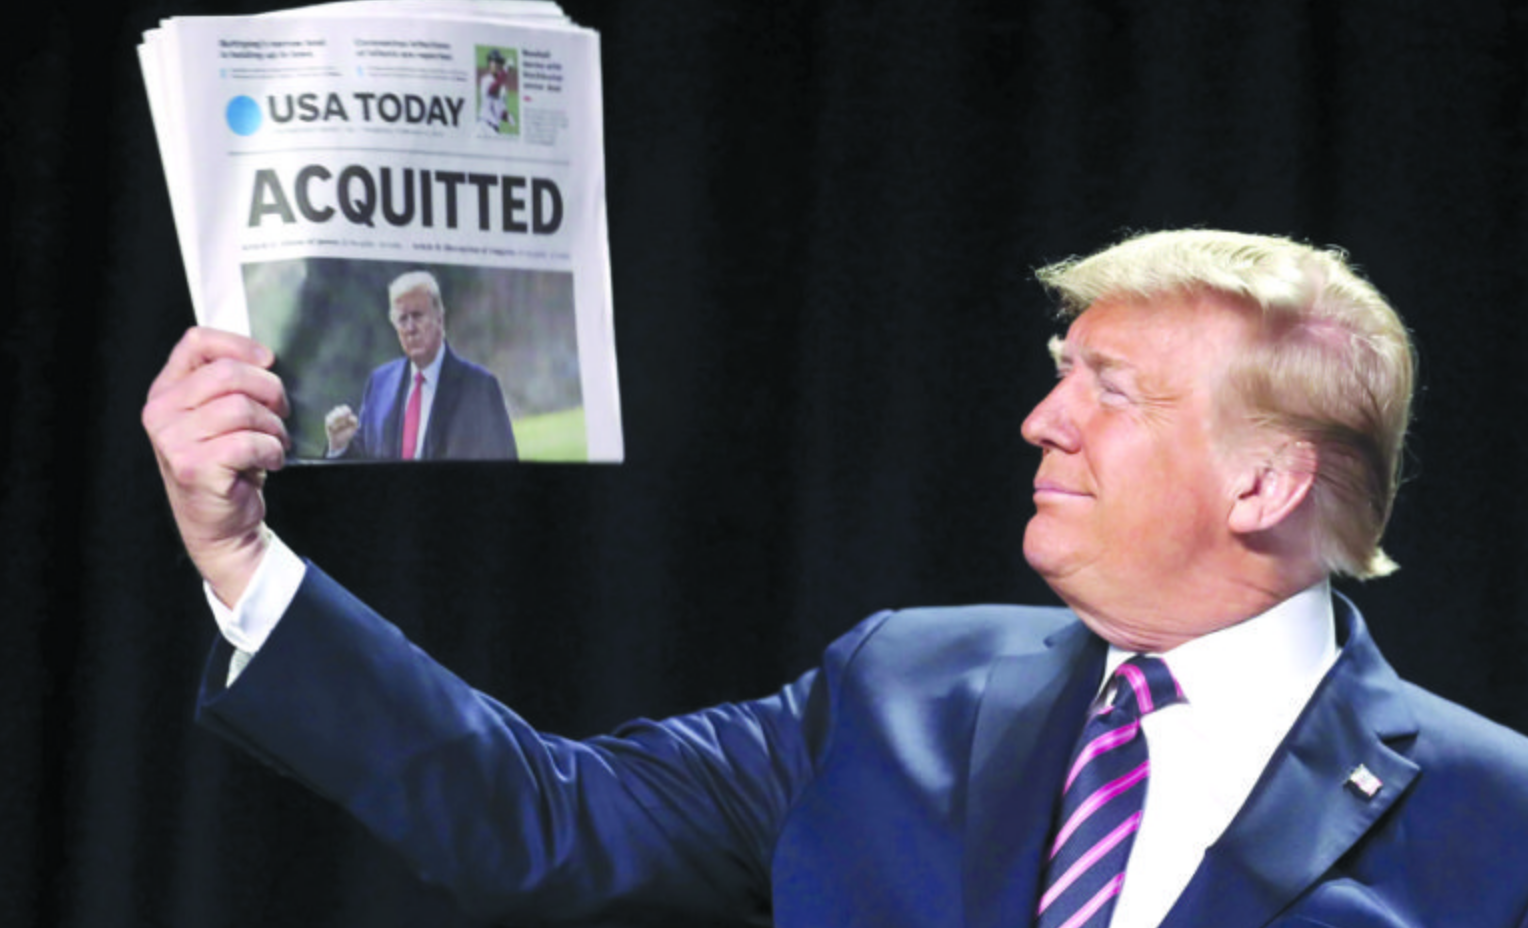 President Trump poses with newspaper headline sayig he was acquited